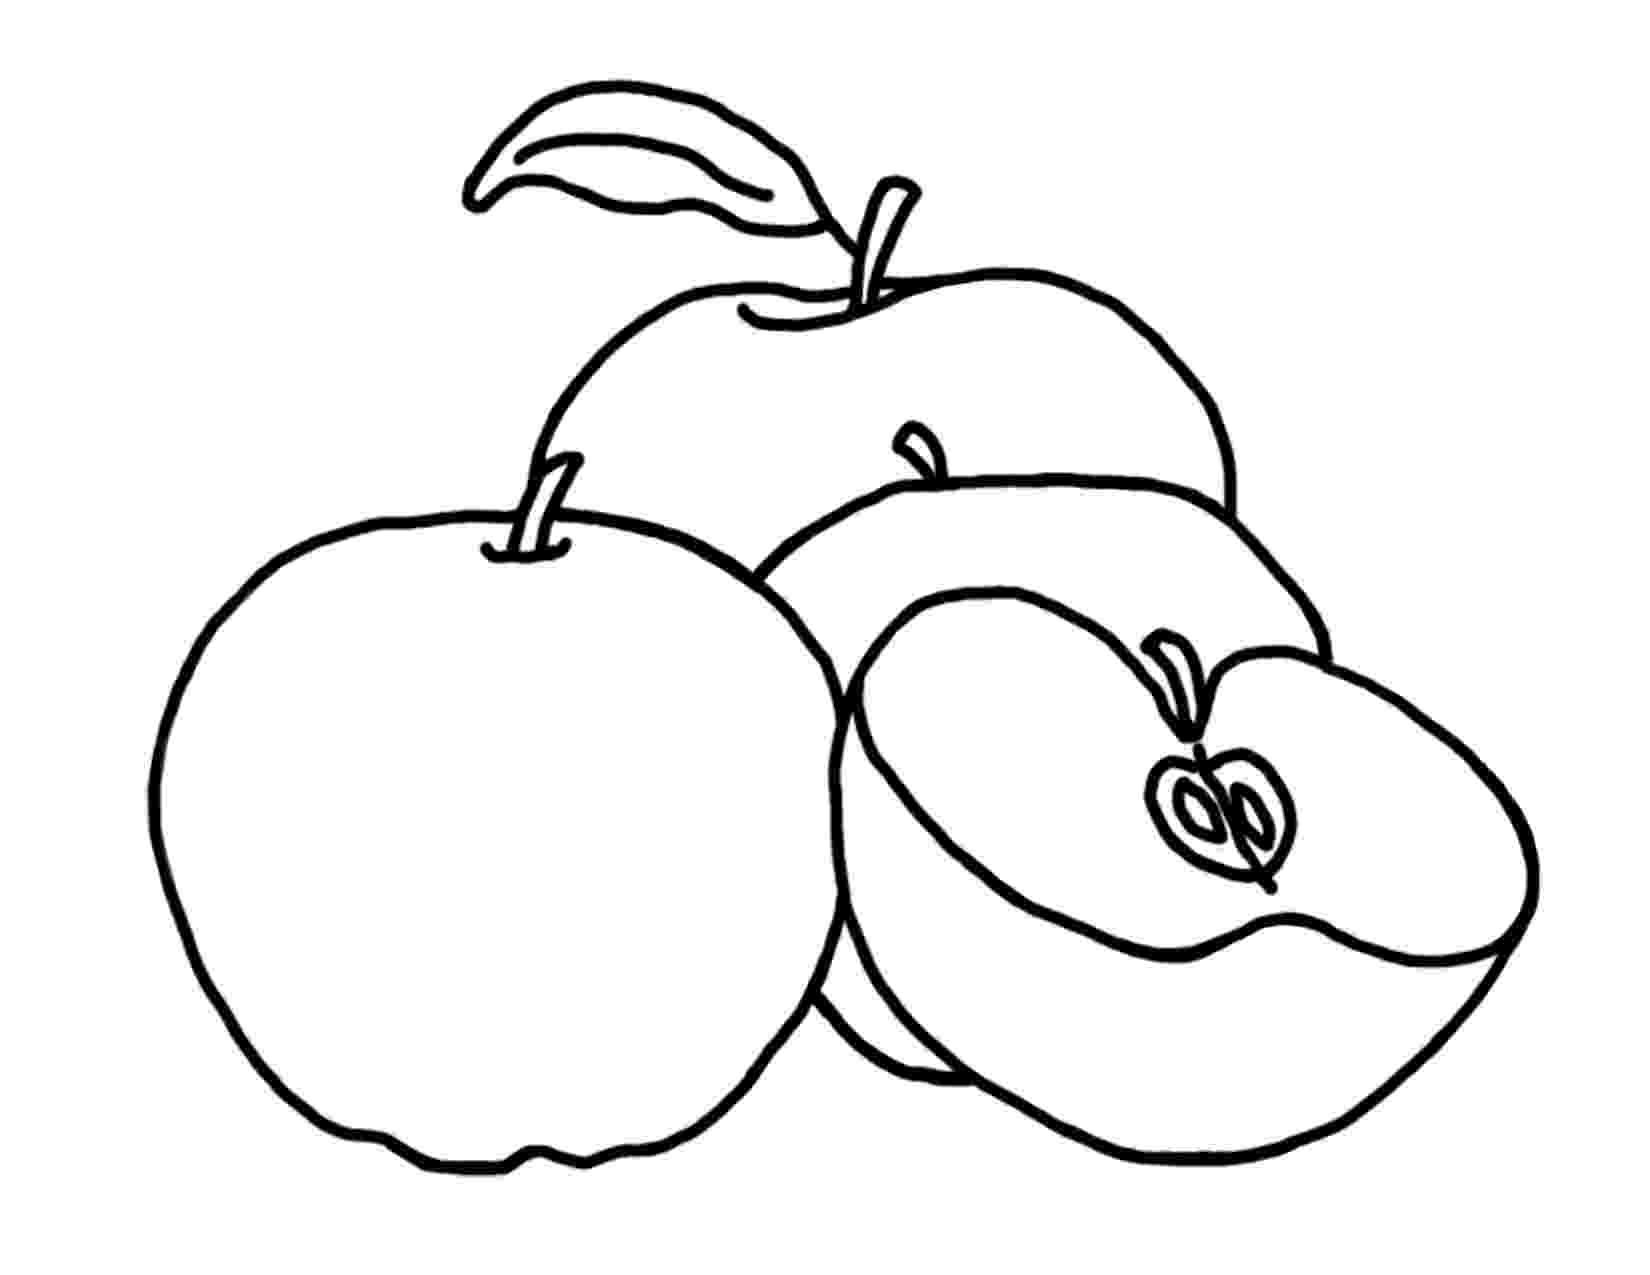 free printable apple coloring pages green apple coloring page free printable coloring pages apple free coloring pages printable